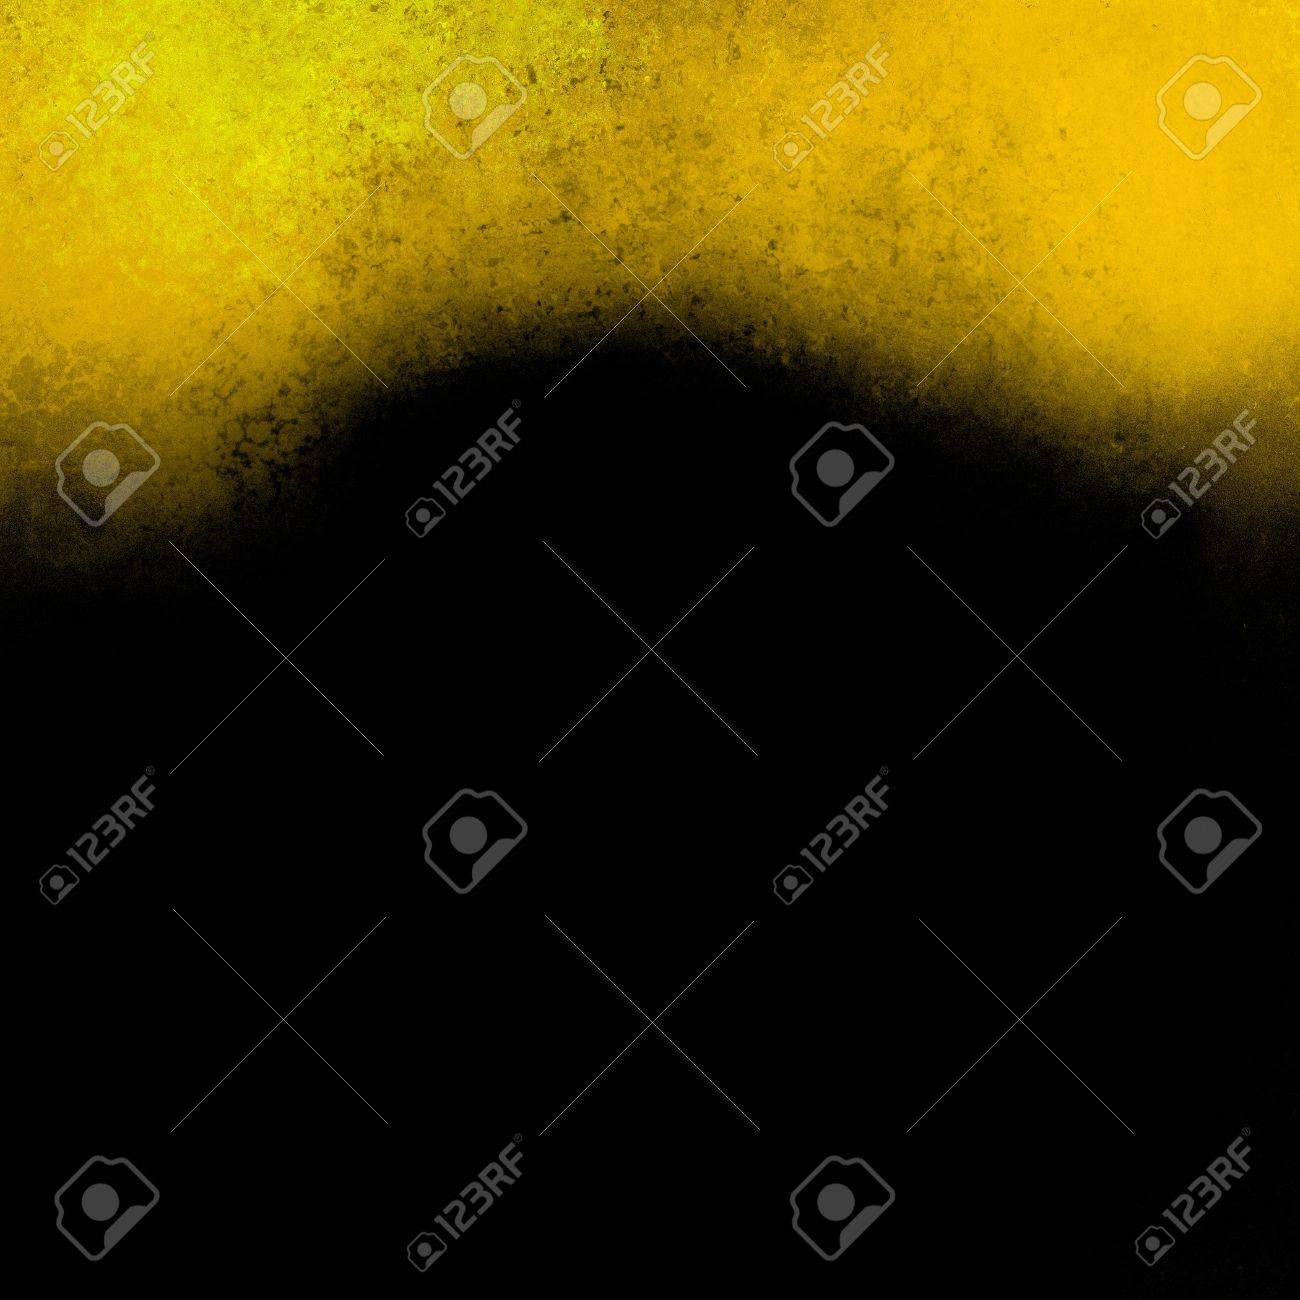 black gold background abstract wavy border, vintage grunge background texture design website header background template, elegant artsy paint canvas wall, light paper yellow background curve element Stock Photo - 21167267